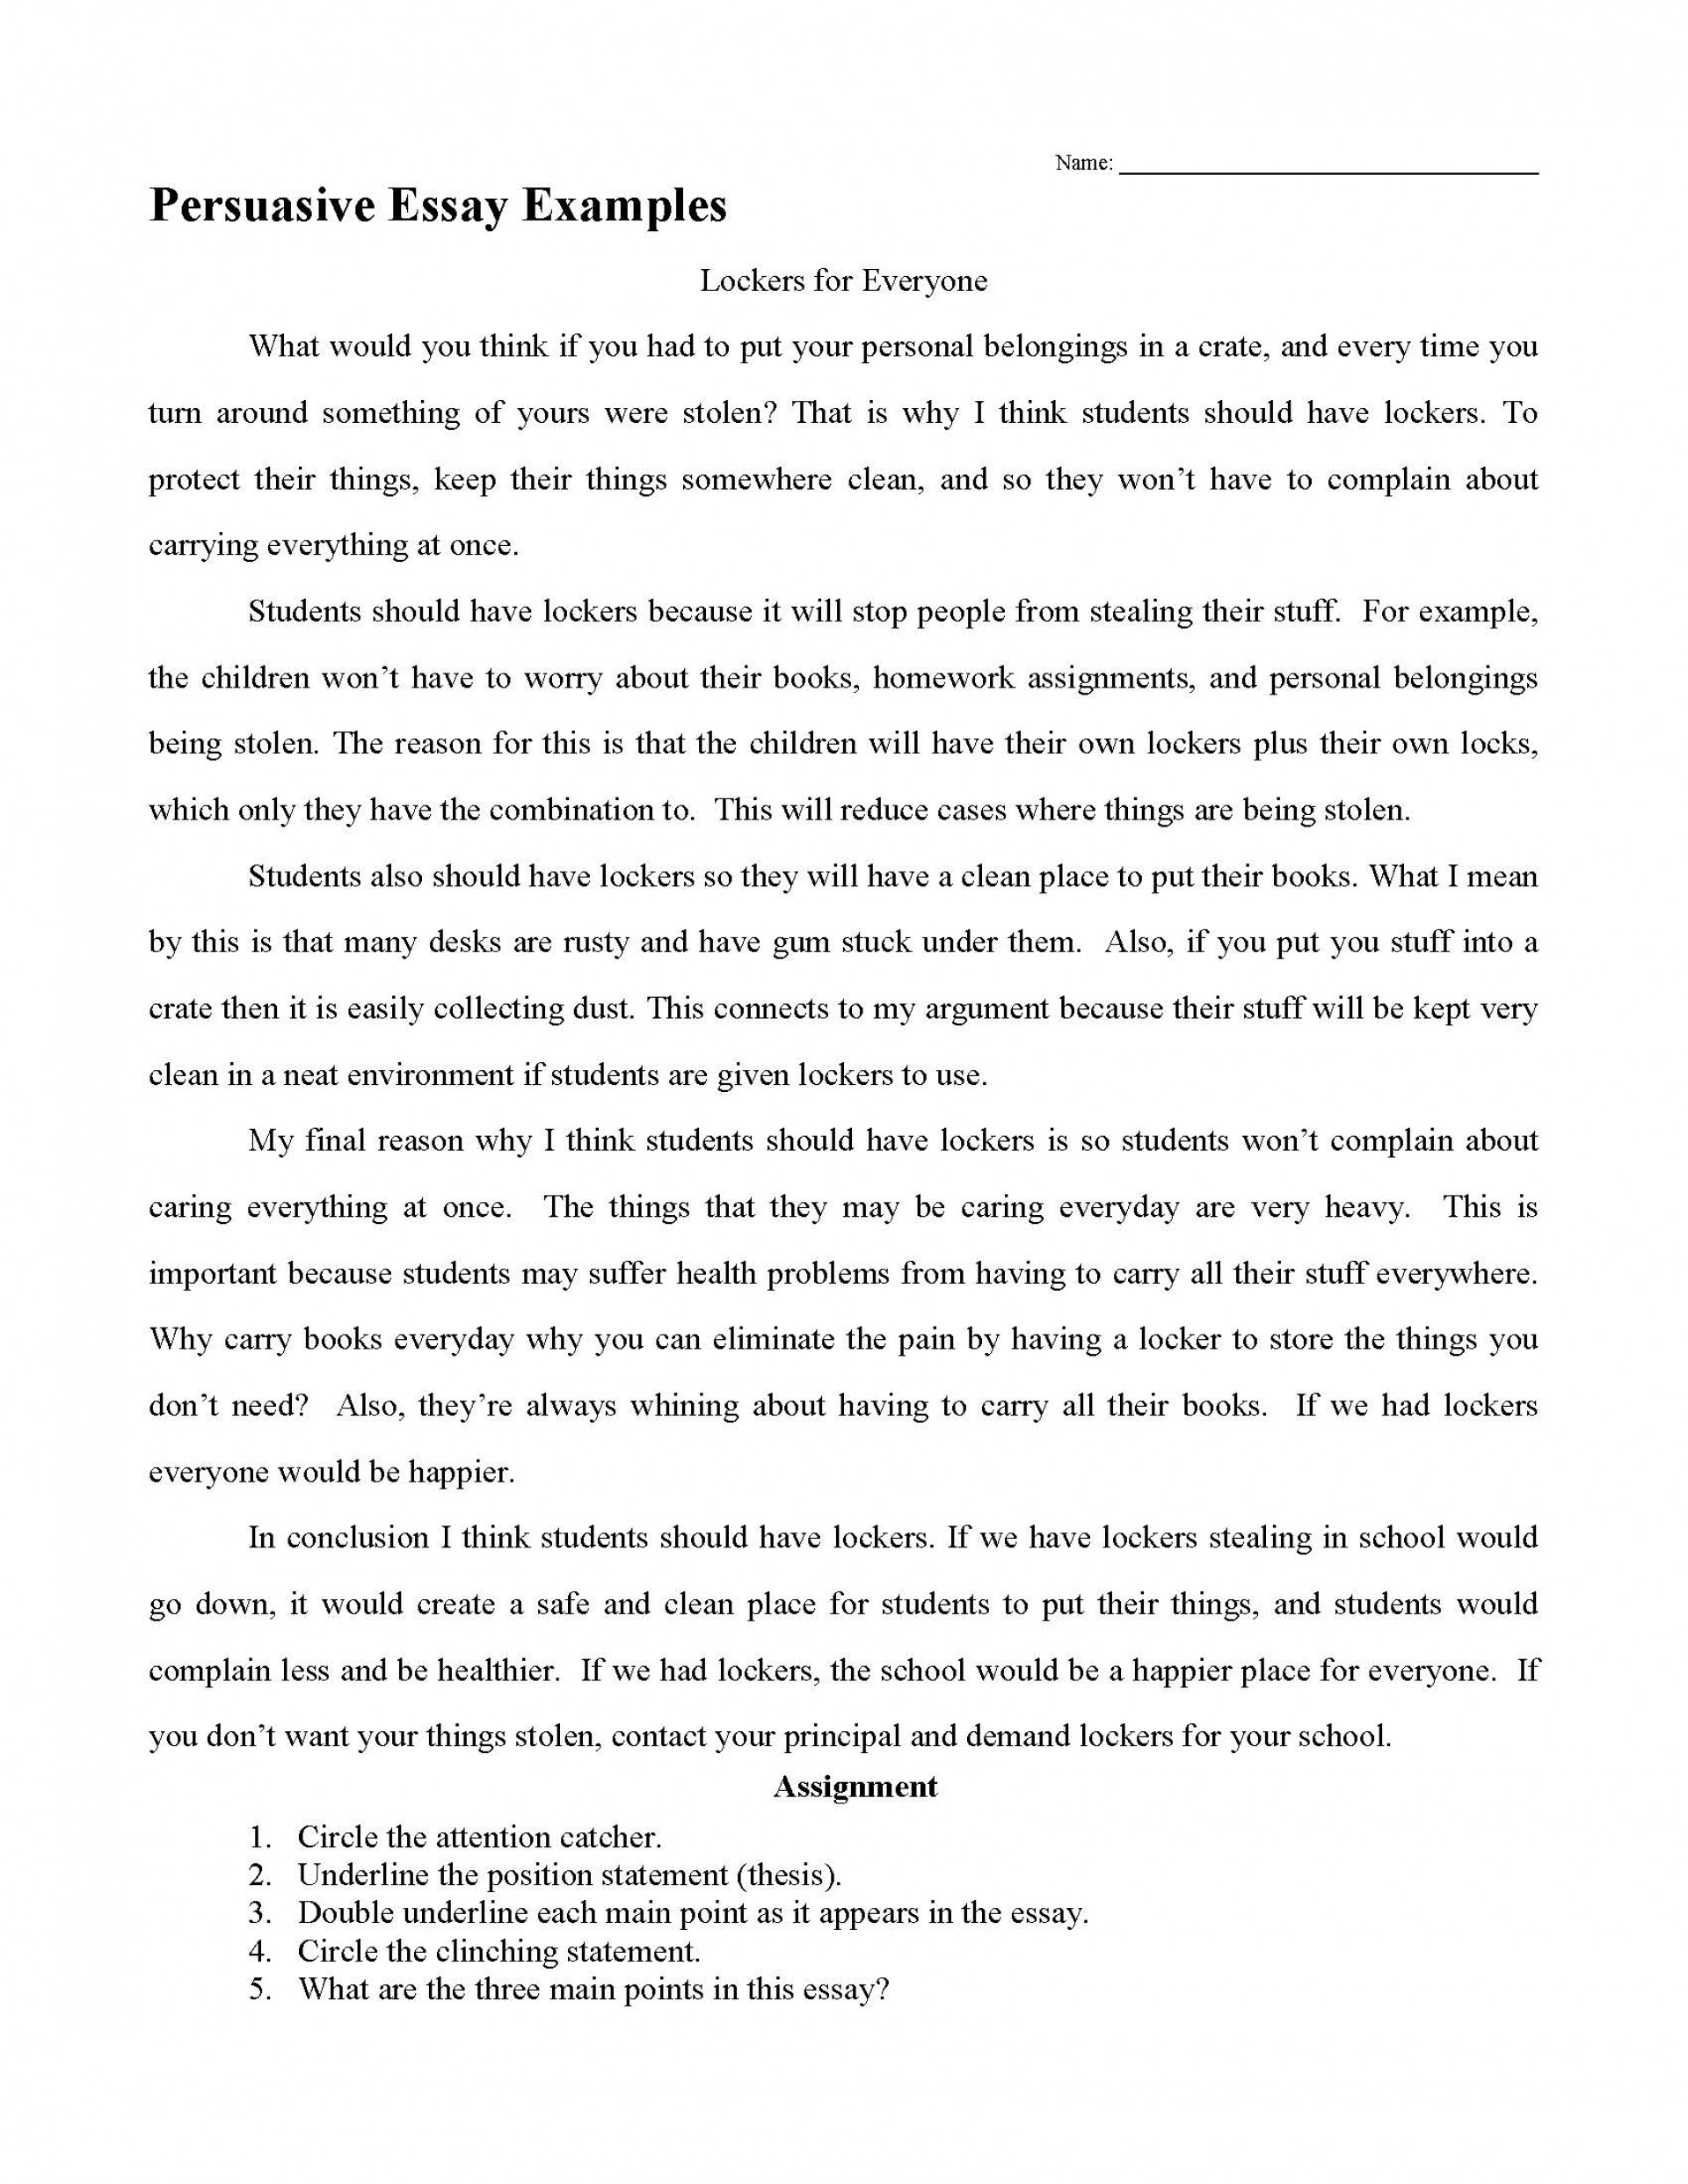 014 Research Paper Persuasive Essay Examples Introduction Of Awesome A Paragraph For Apa 1920